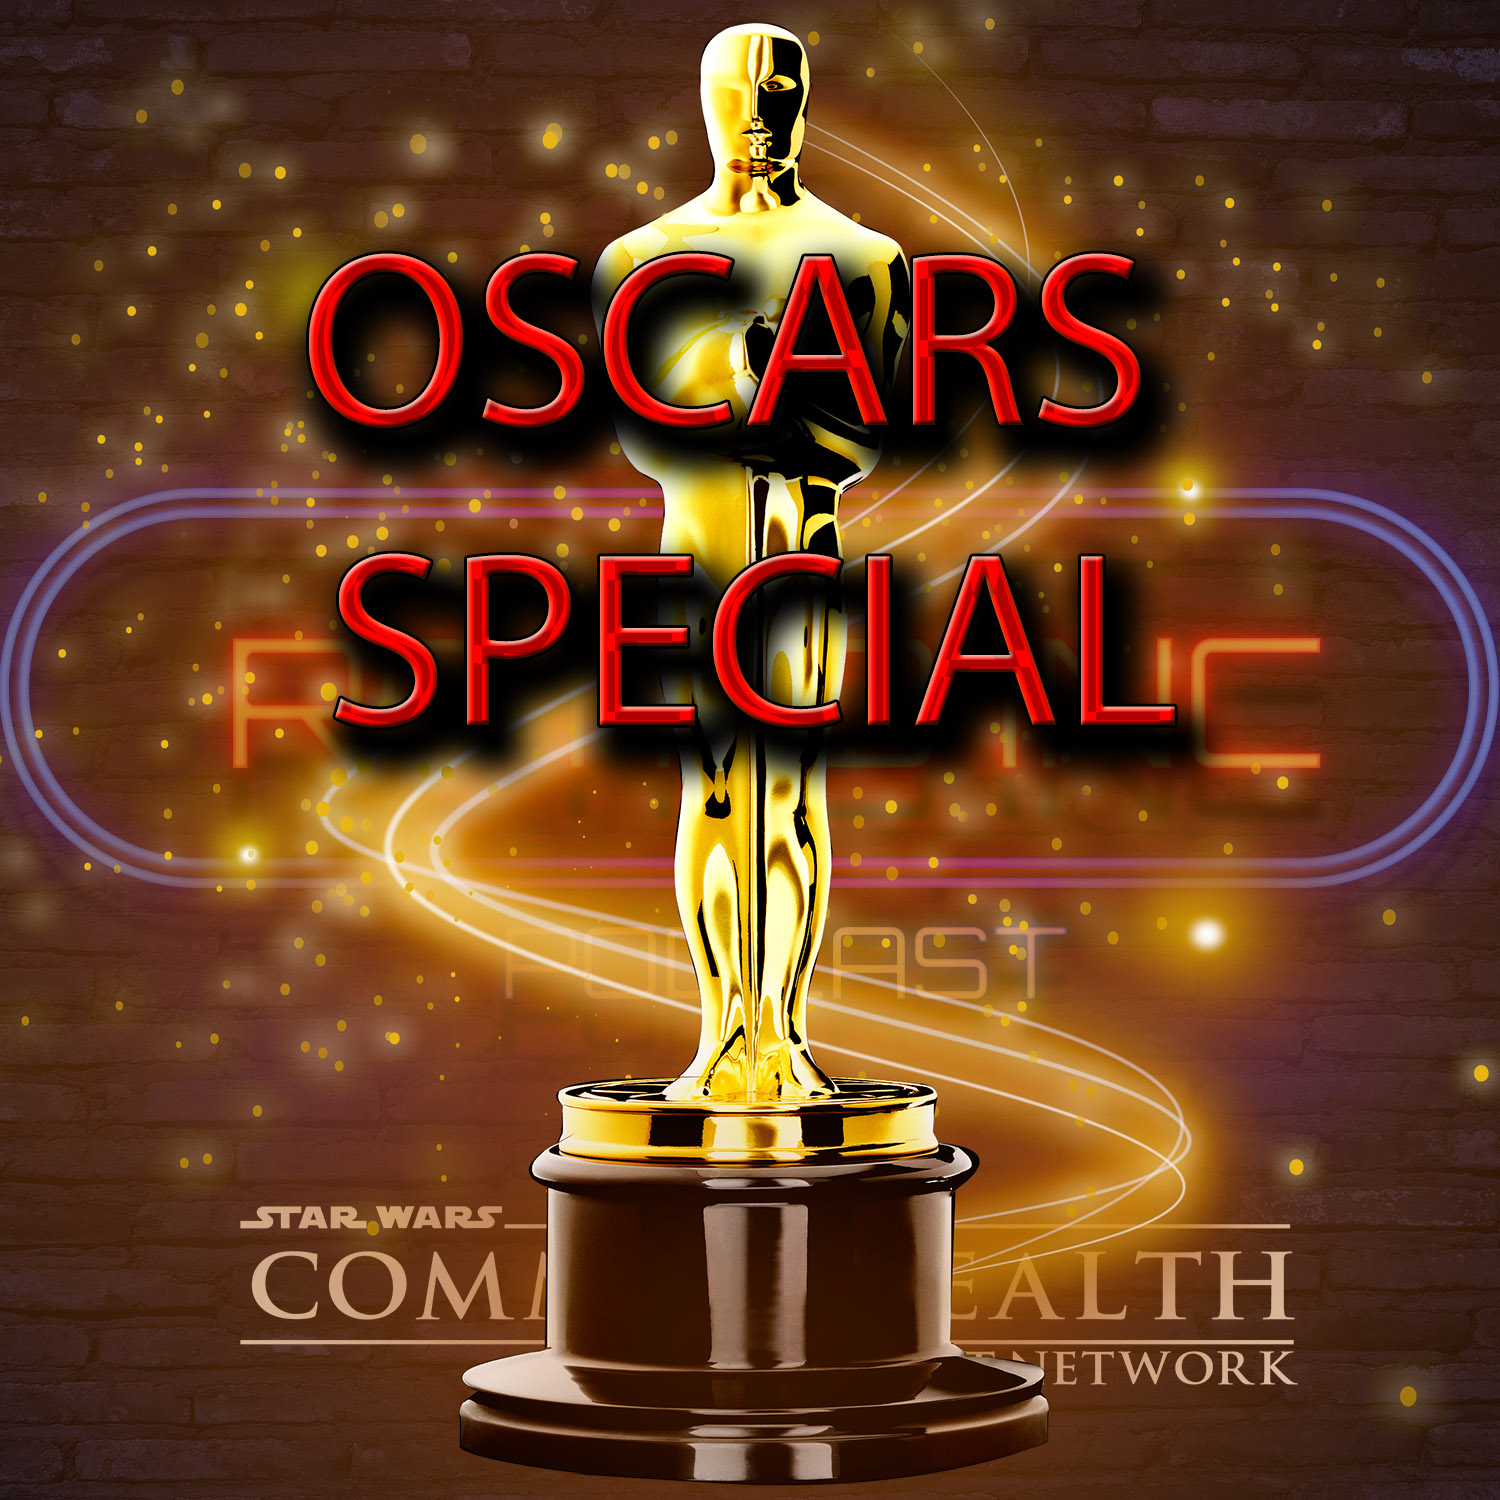 Oscars Special 2019 - Retro Inc Predictions